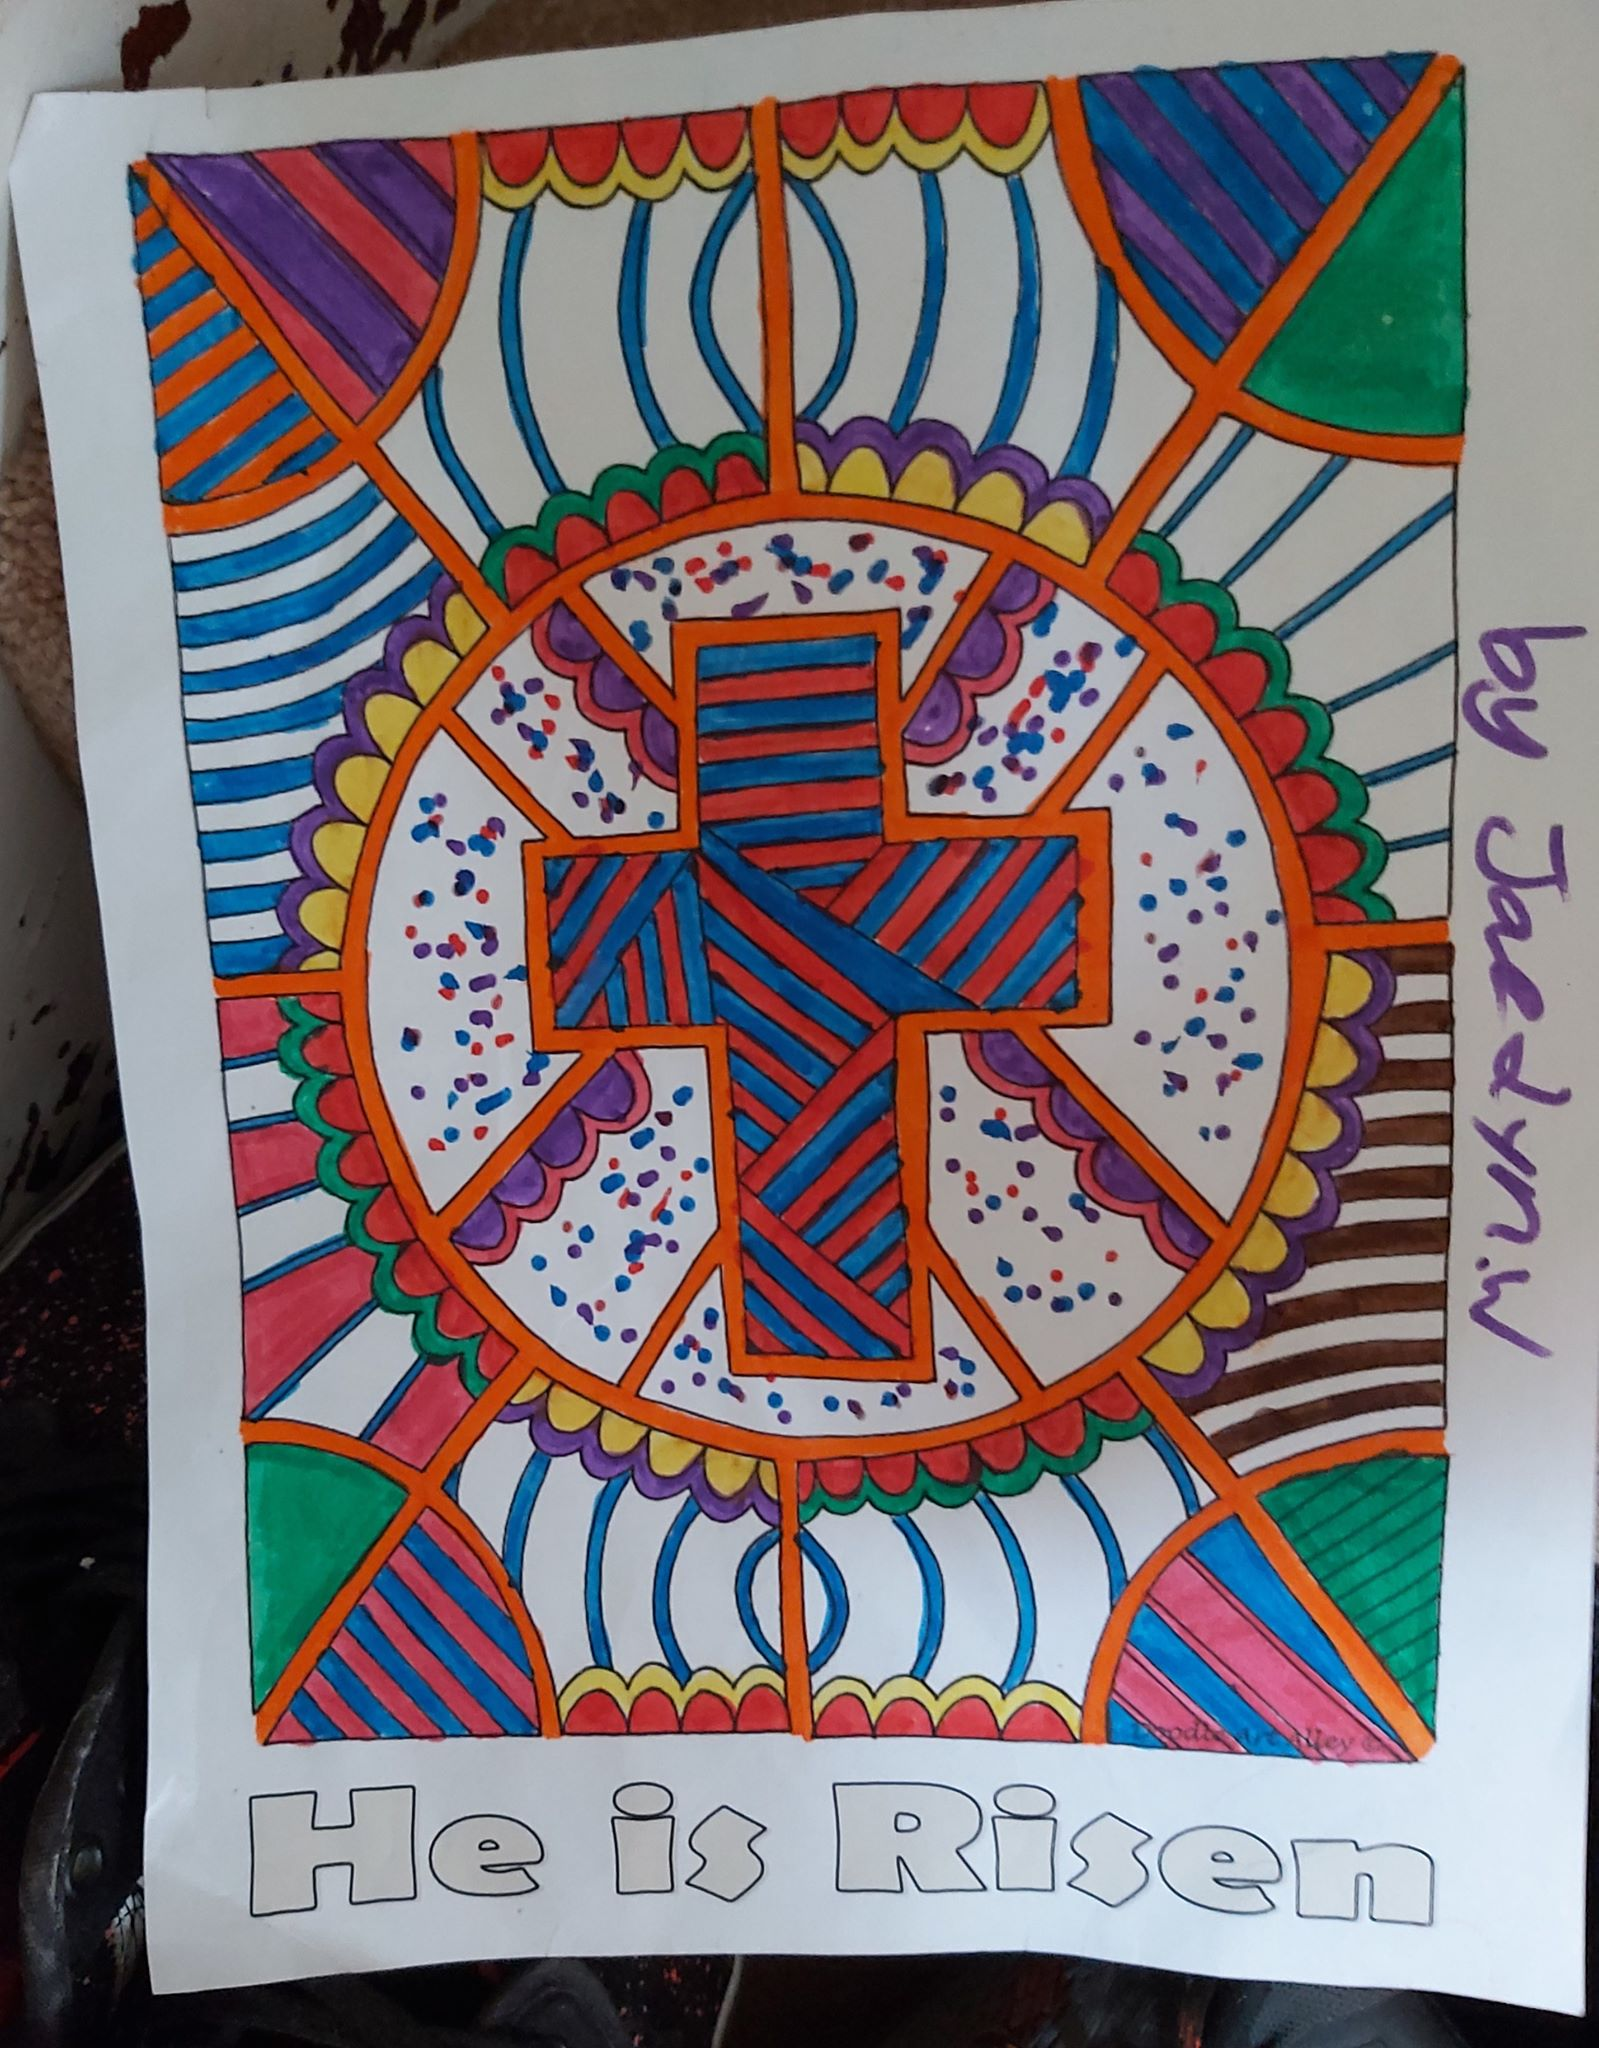 Jaedyn's colouring page